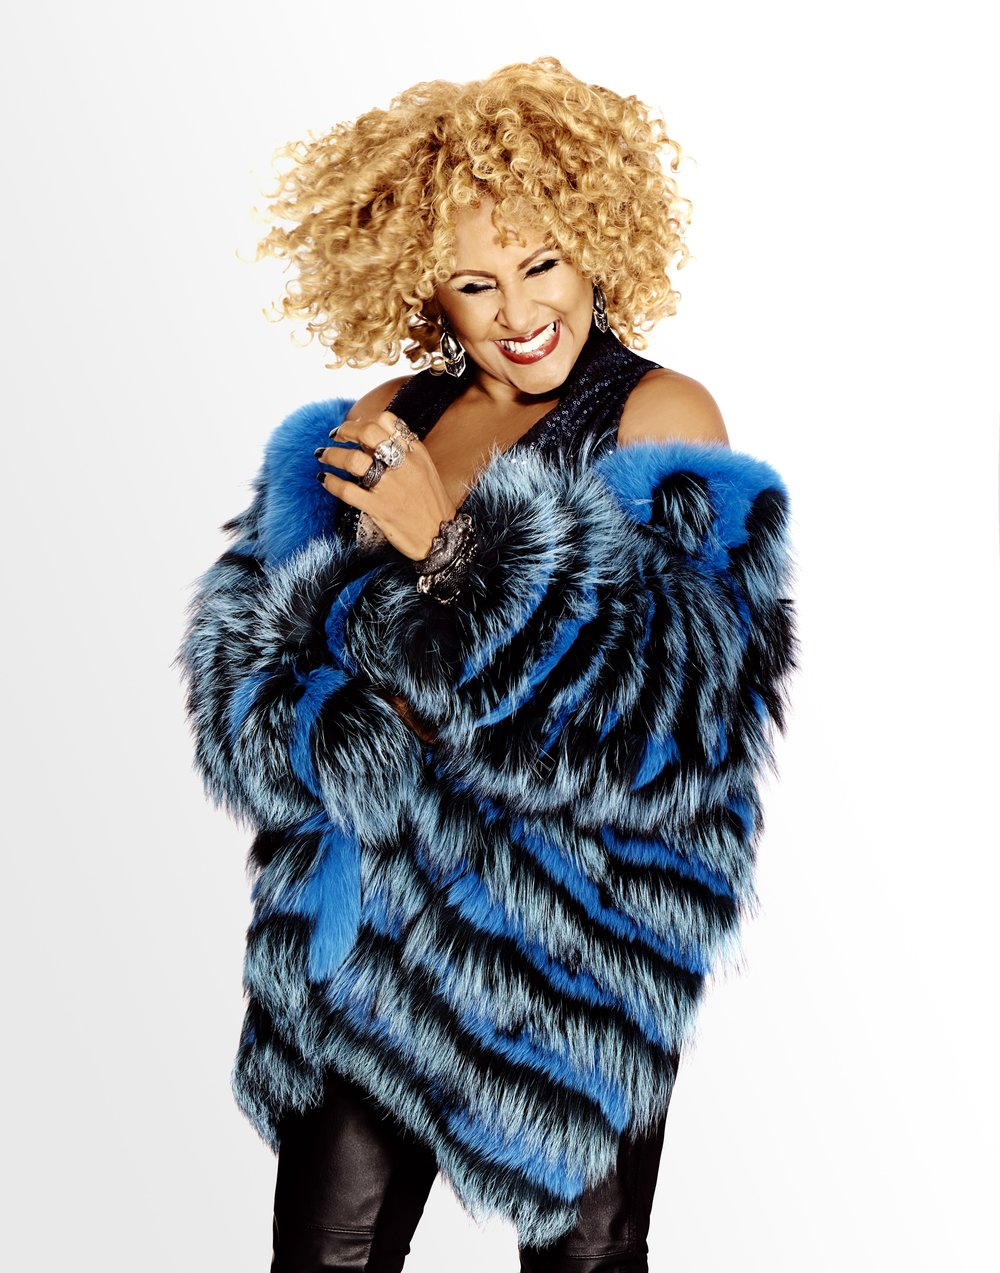 Darlene Love | Landmark on Main Street | 2.16.18